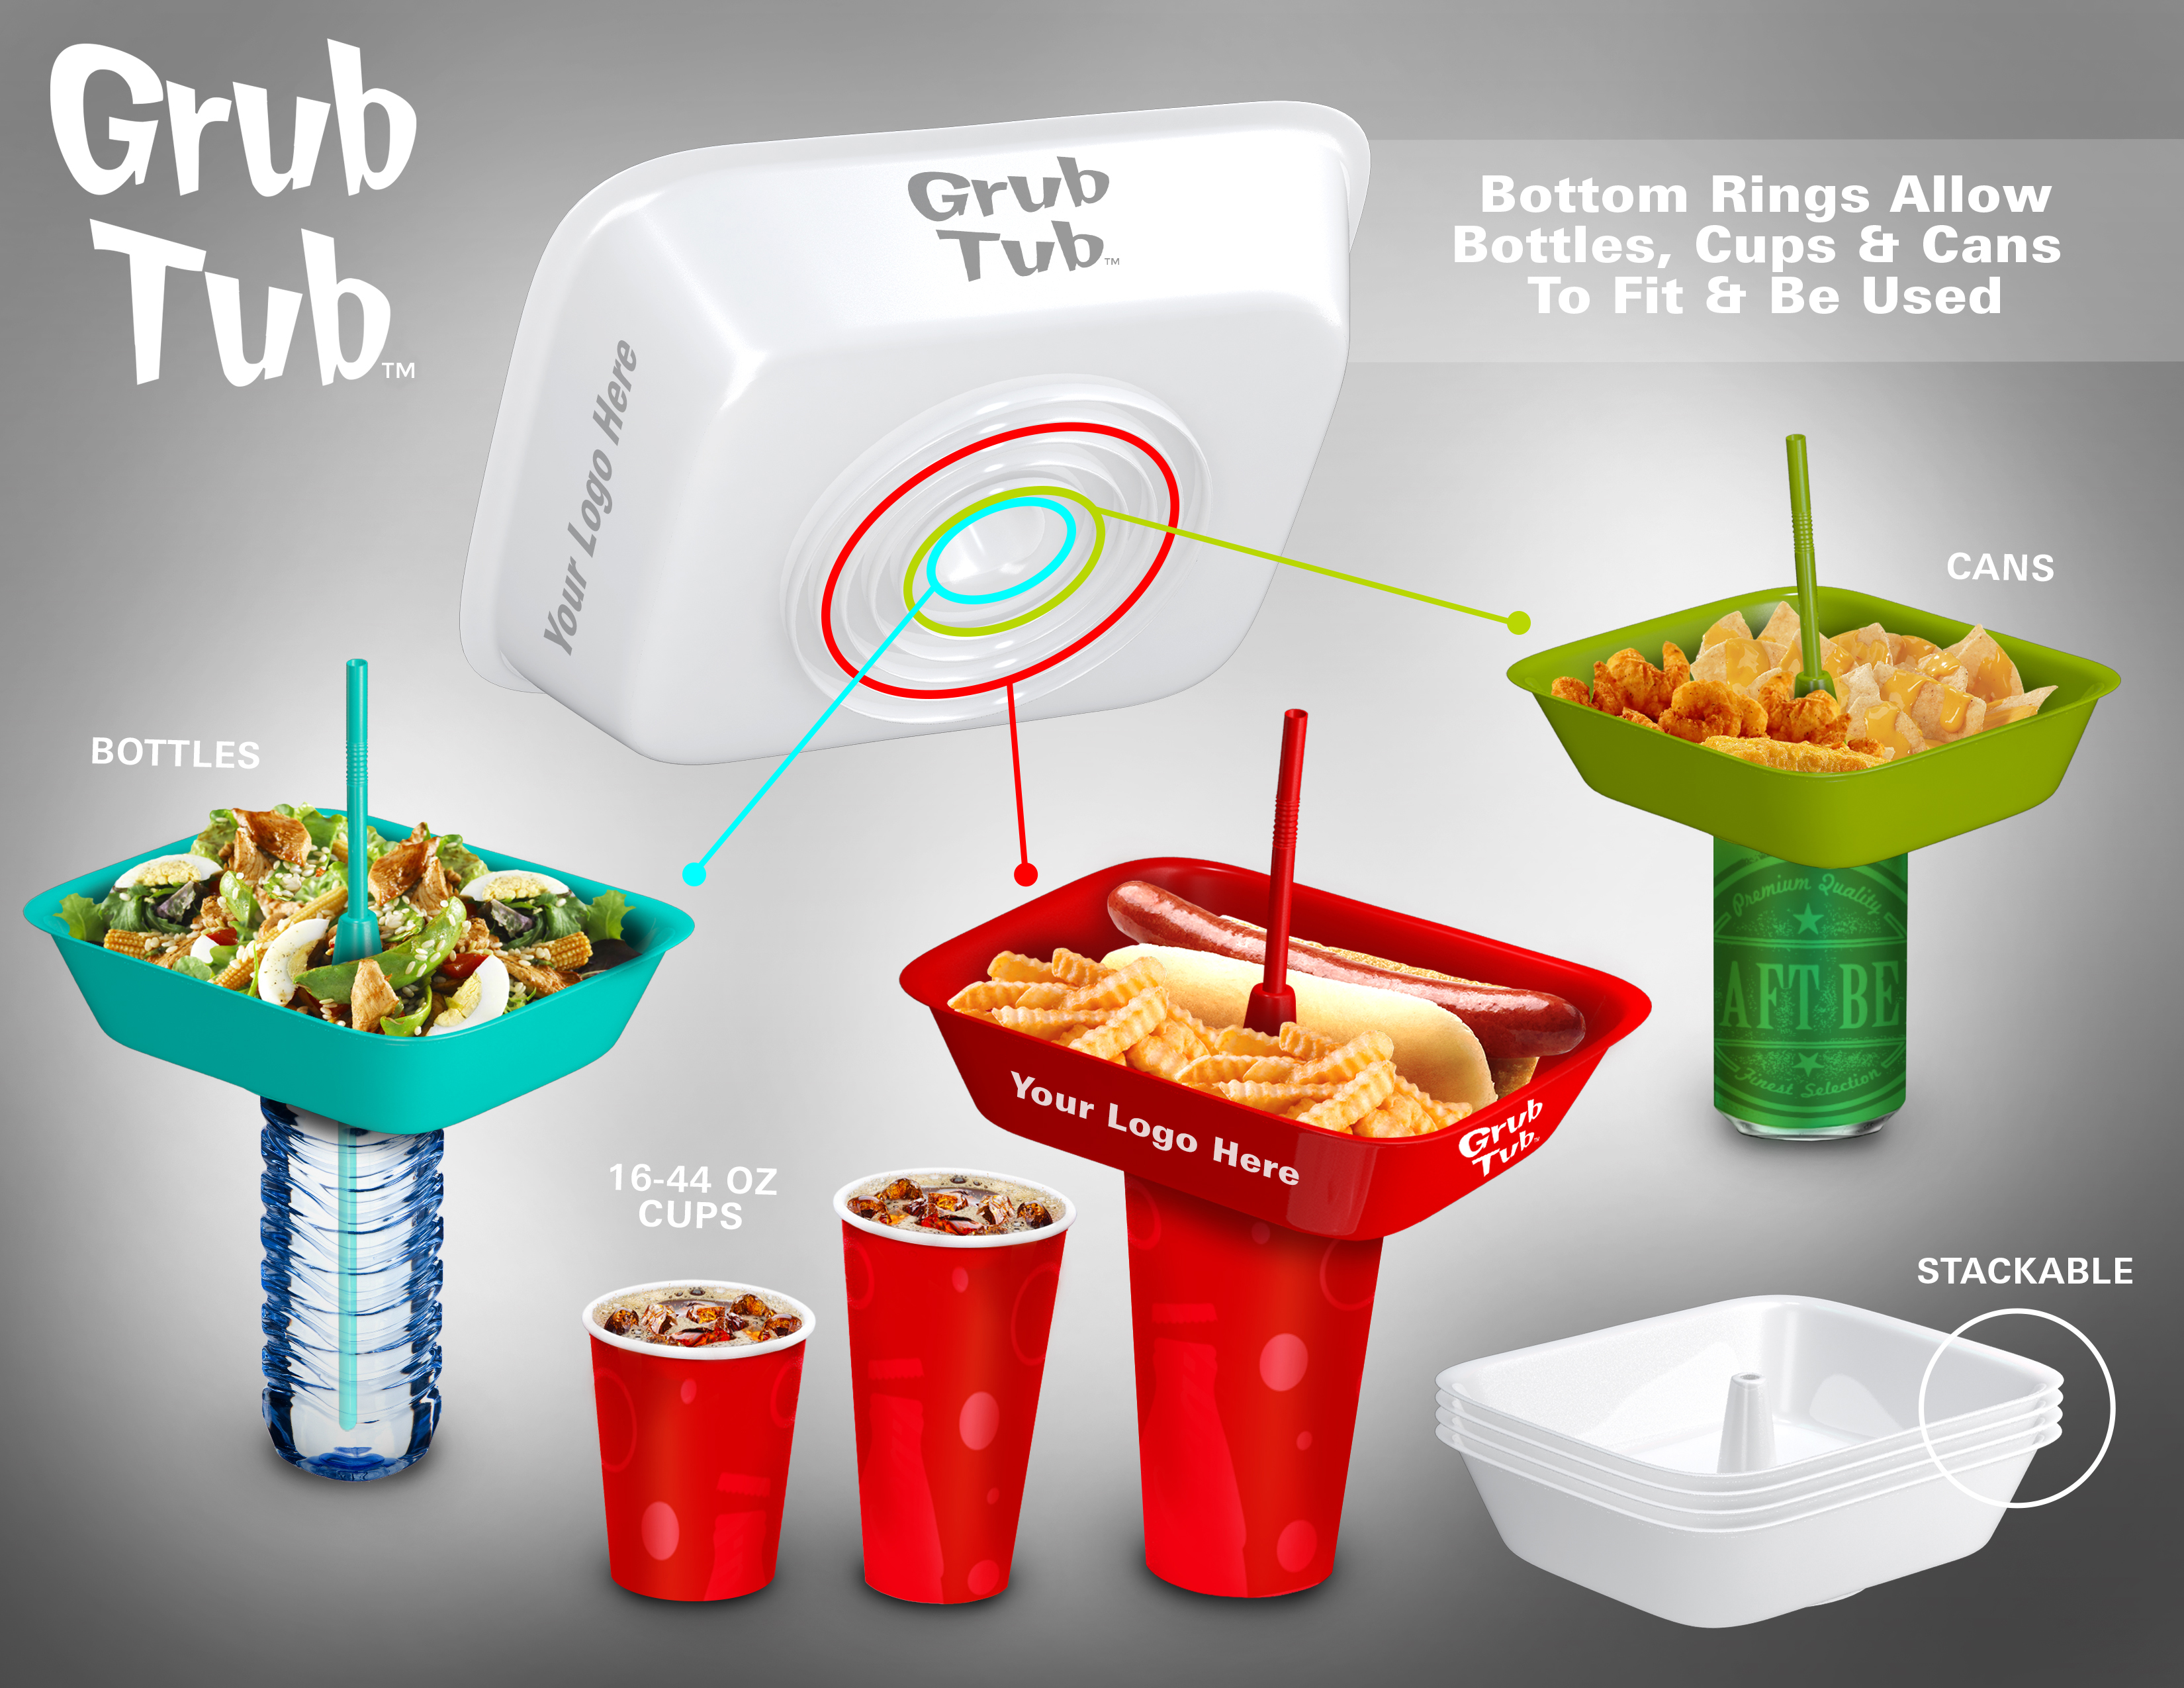 Grub Tub Fits on every standard sized cup, bottle and can